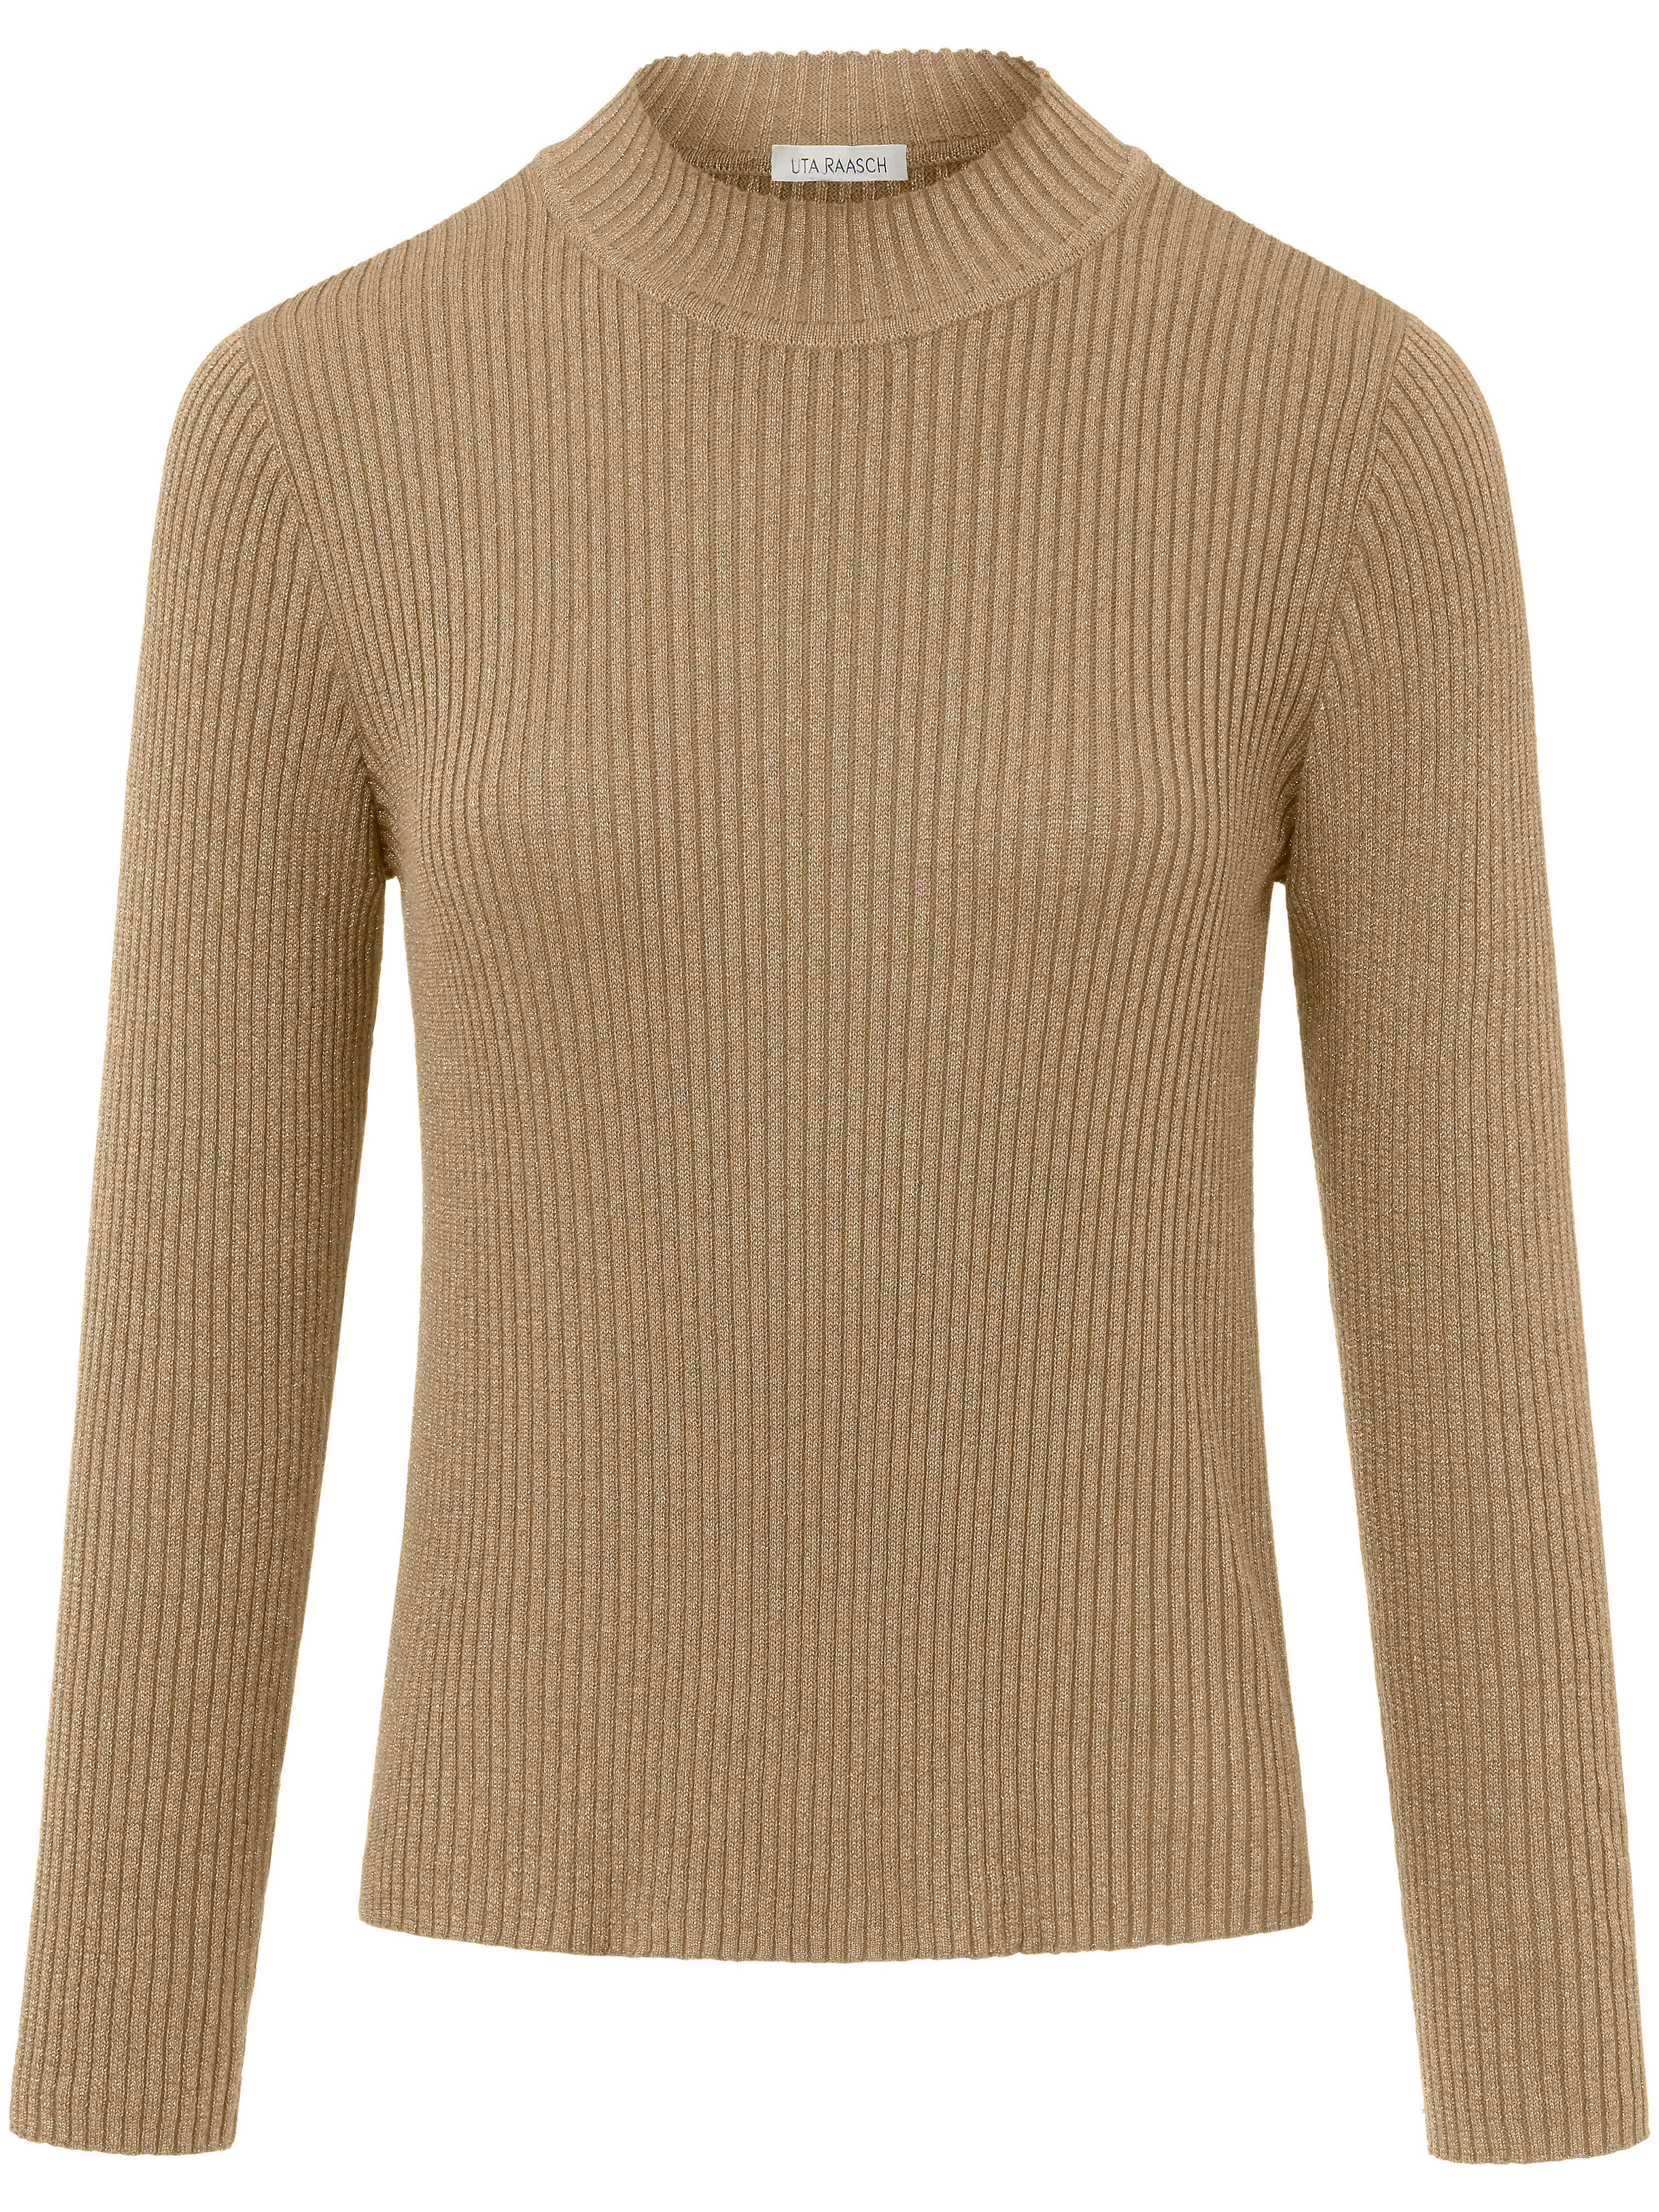 Le pull  Uta Raasch couleur or taille 40